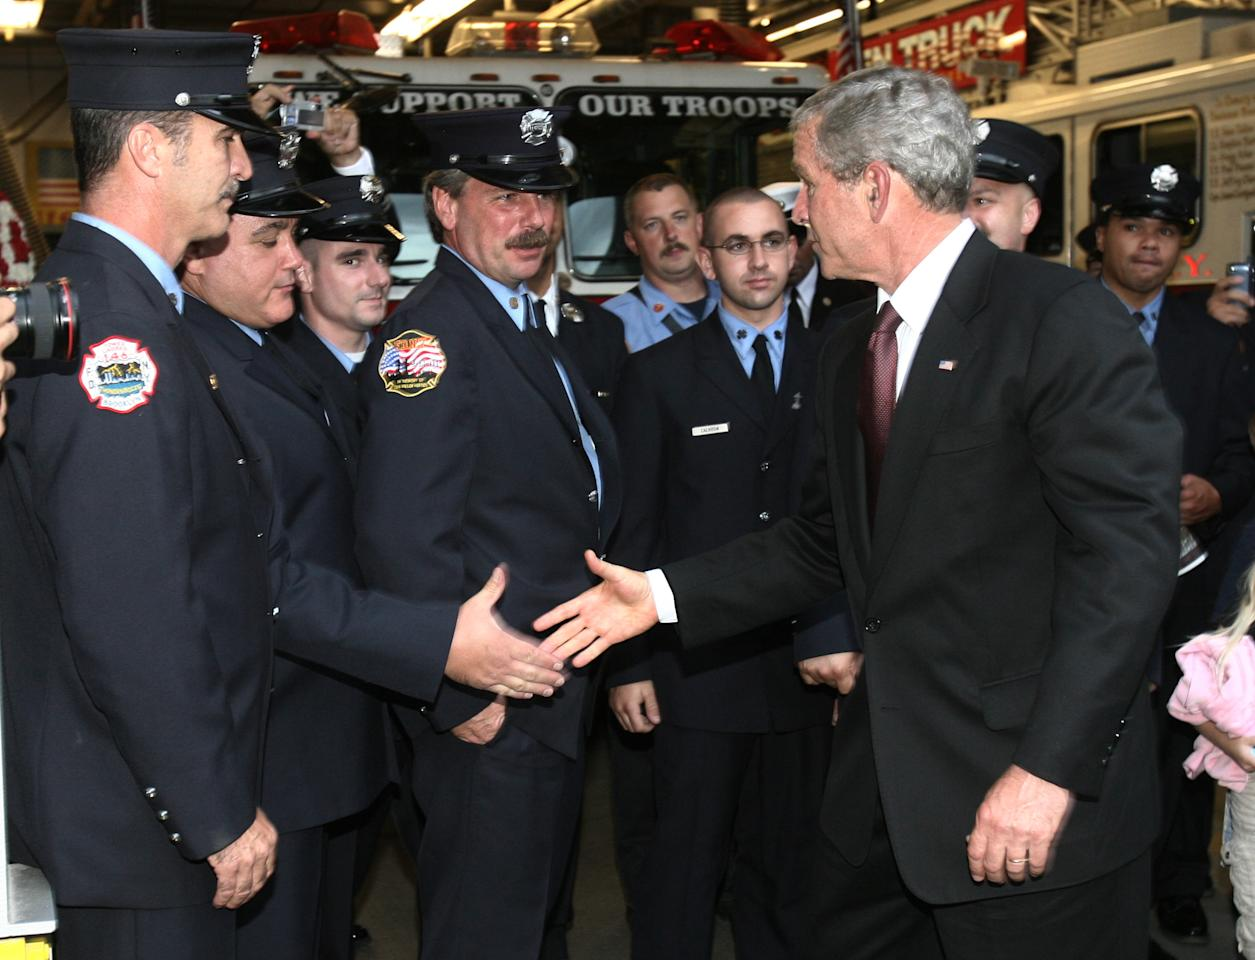 U.S. President George W. Bush greets New York firefighters from Ladder Company 10 located across the street from the World Trade Center site in New York September 10, 2006. Bush lay a wreath at Ground Zero before visiting a chapel for a memorial service. (REUTERS/Jason Reed)